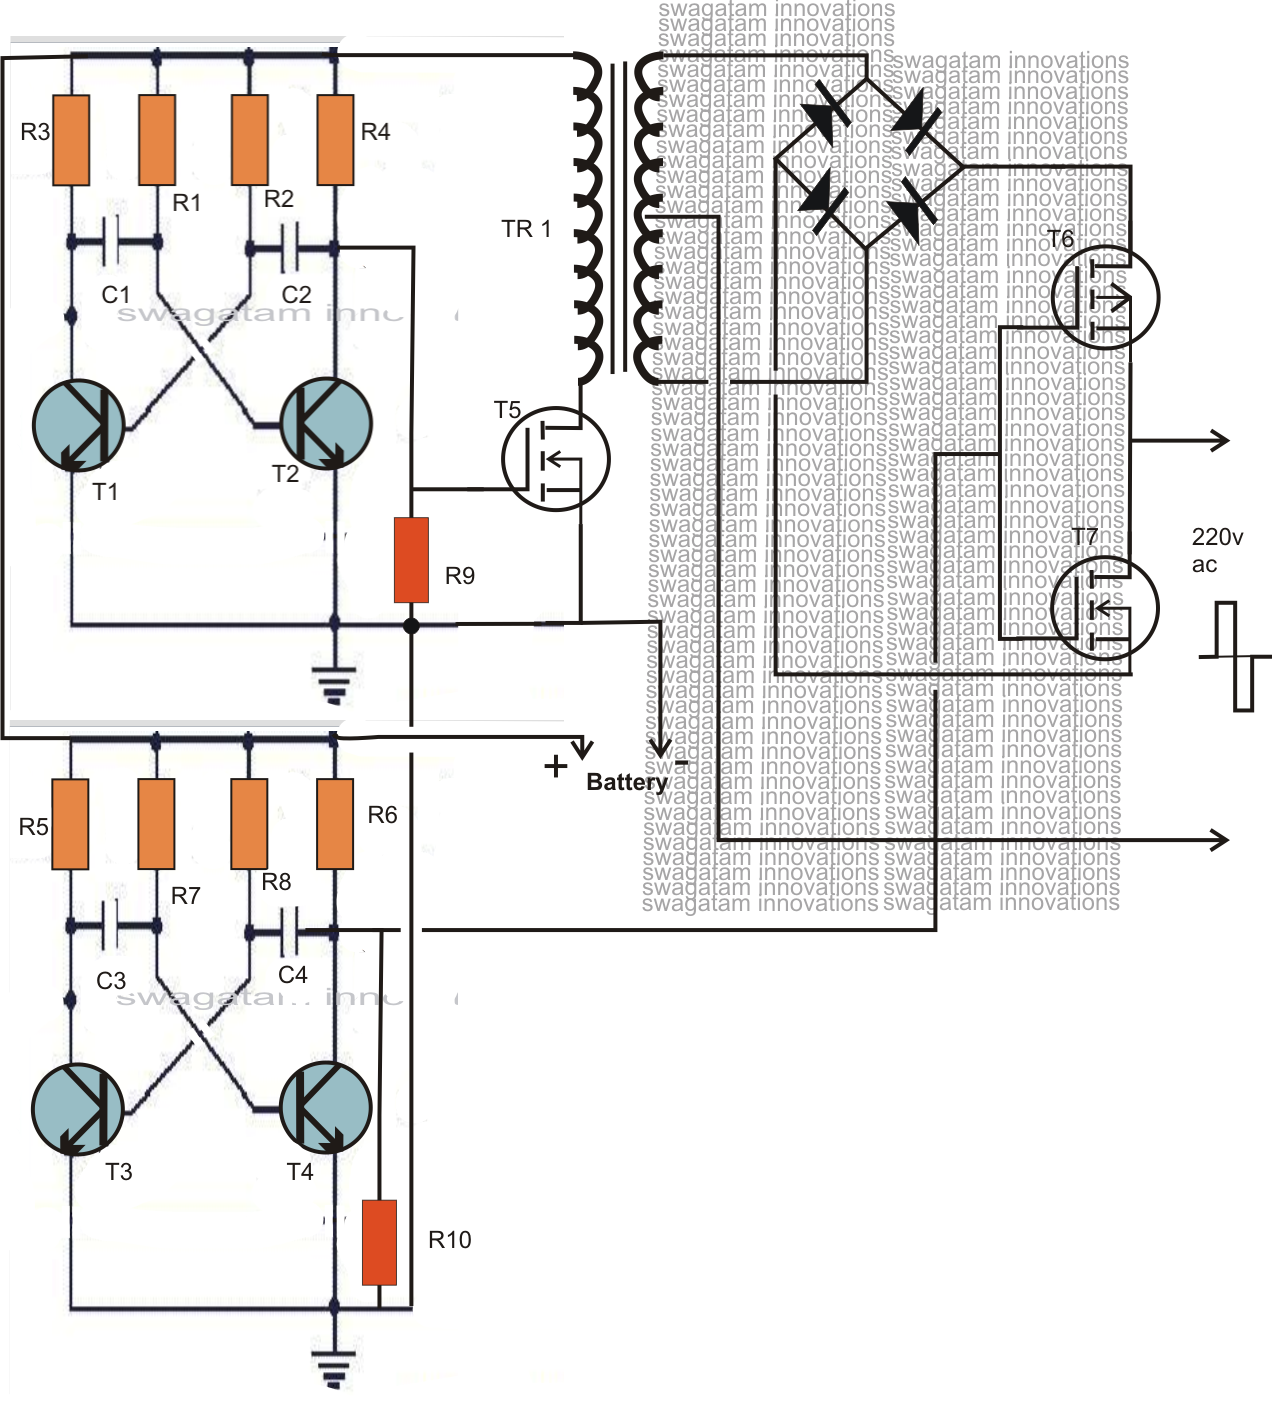 dc to ac inverter diagram powered subwoofer home audio wiring diagrams 12v 220v circuit how make pdf